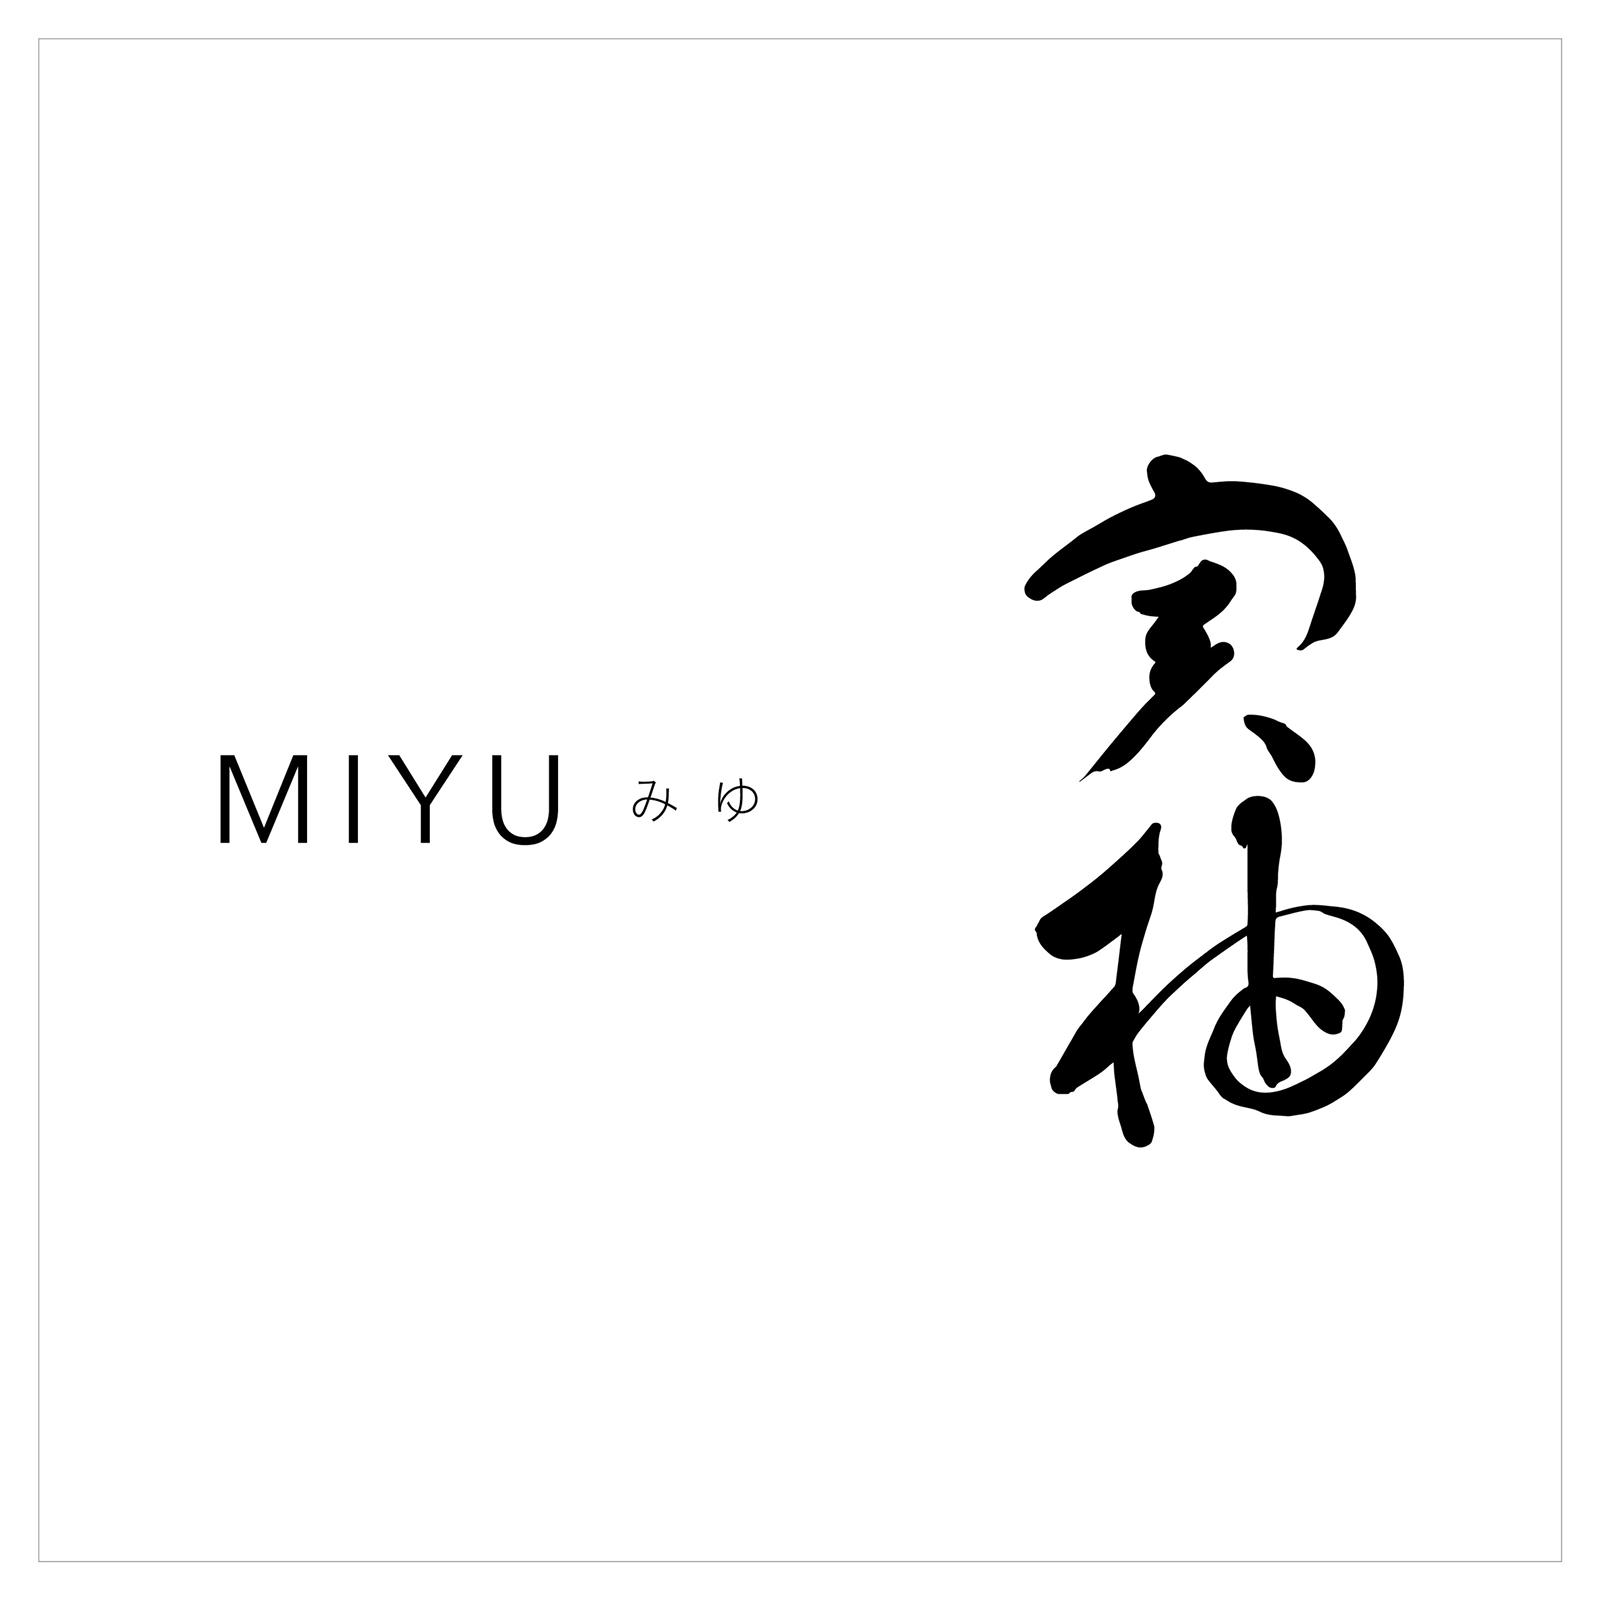 Miyu - Exquisite Omakase in Singapore at sincerest prices